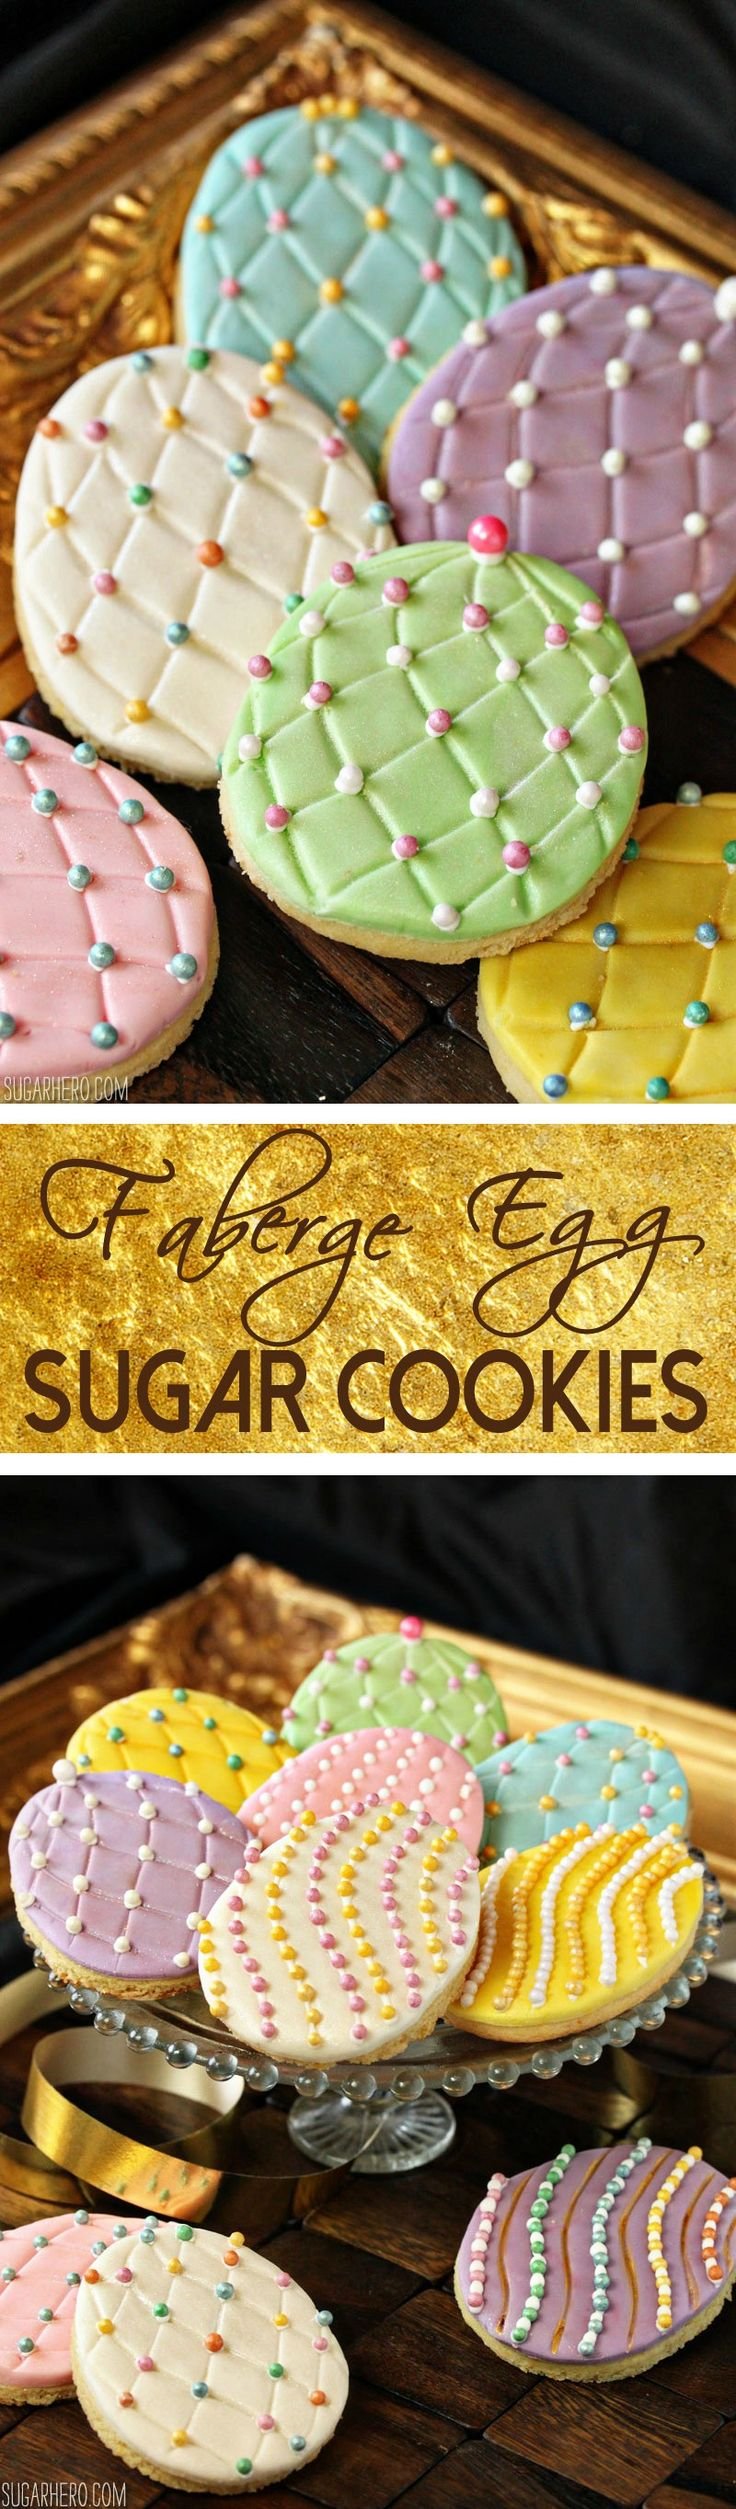 Faberge Egg Sugar Cookies - add some bling to your Easter basket with these gorgeous sugar cookies! | From SugarHero.com